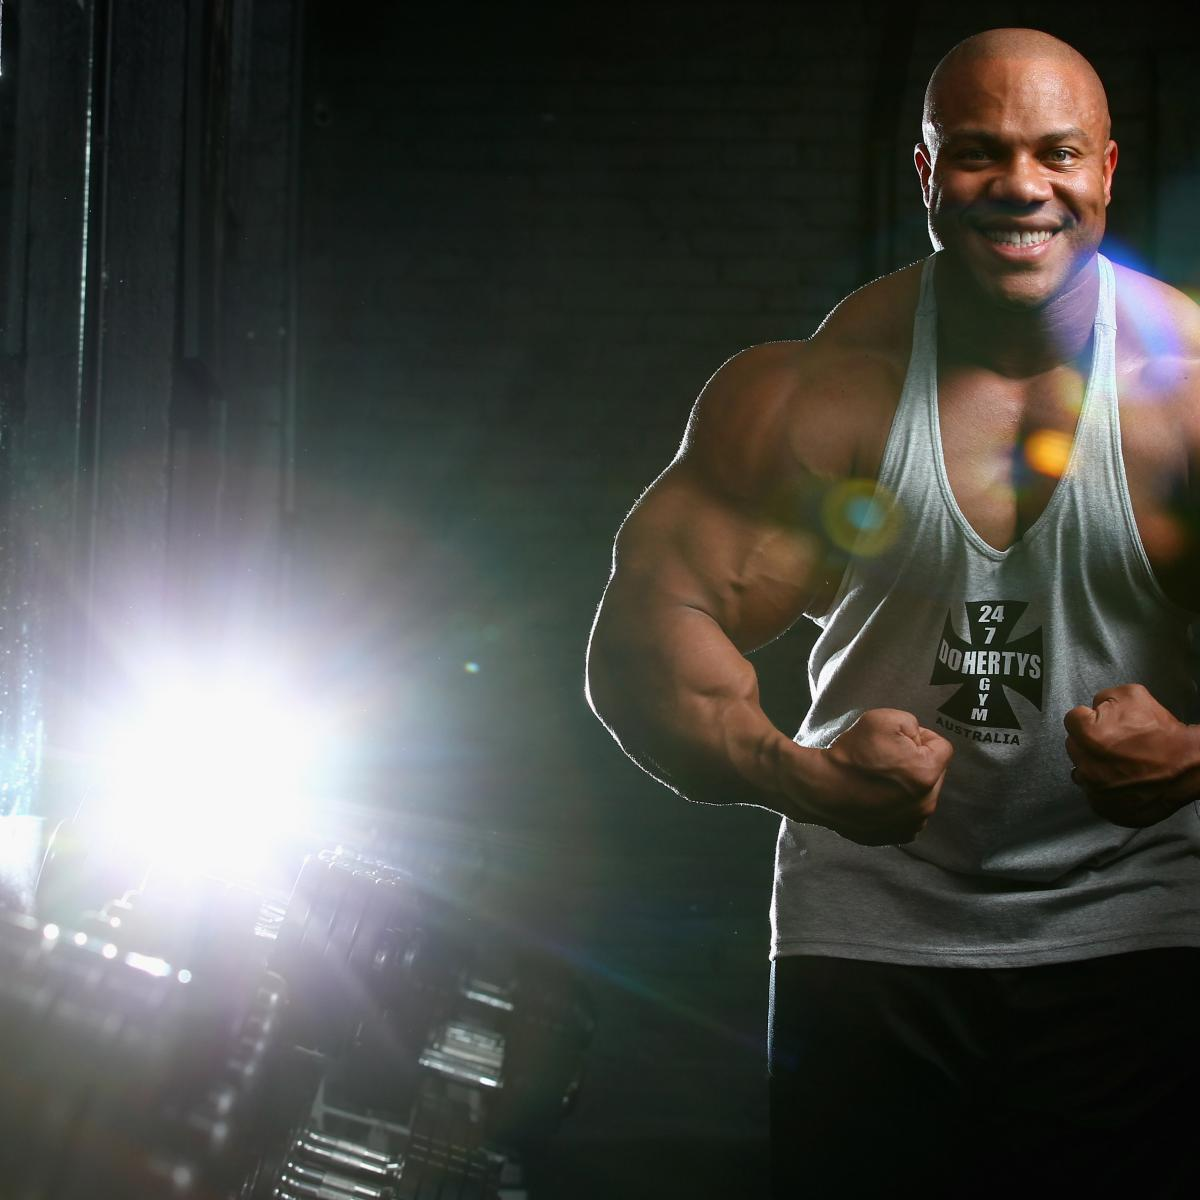 Mr. Olympia 2016 Winner: Video, Results And Prize Money